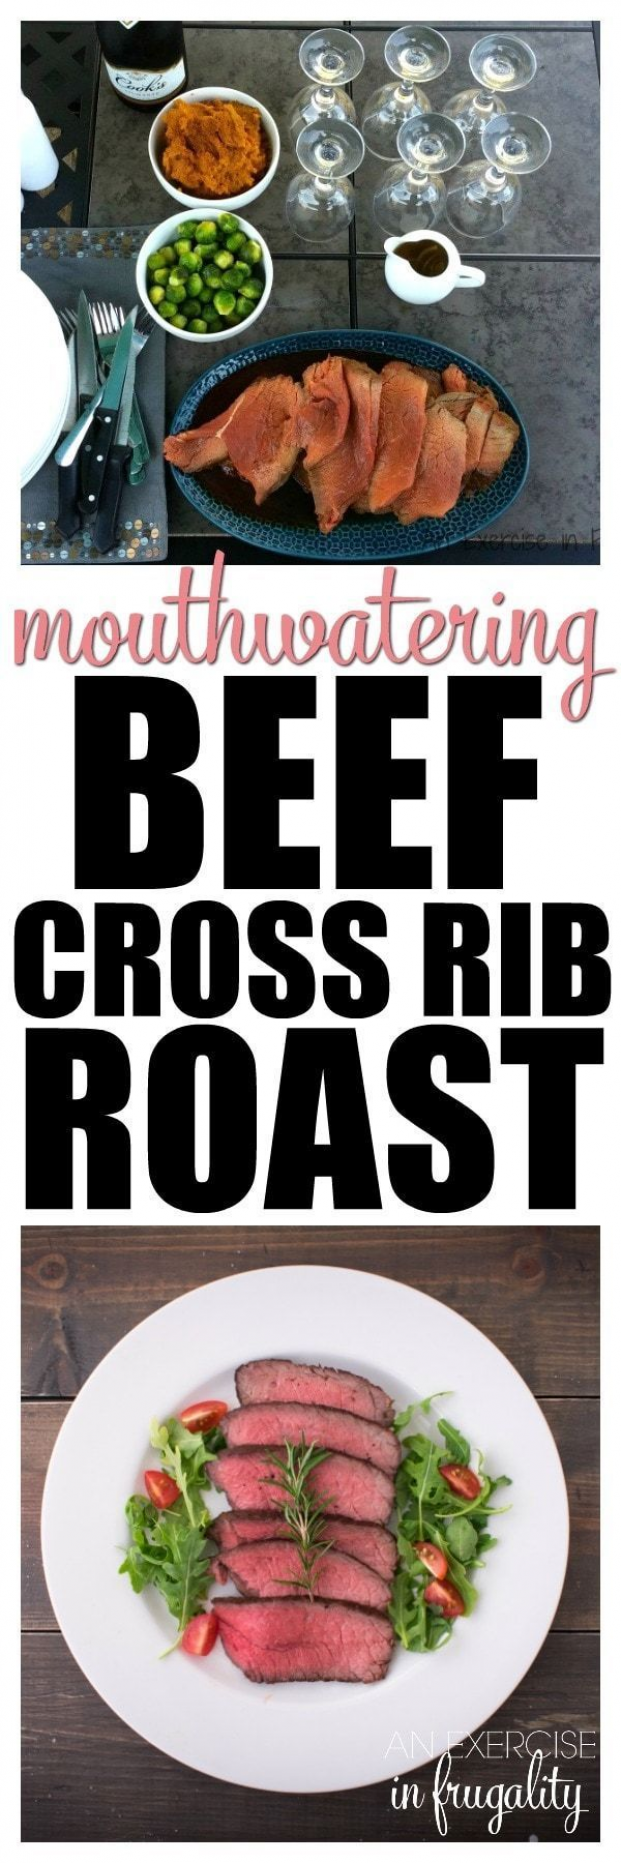 This MOUTHWATERING Beef Cross Rib Roast recipe is SO simple it has just TWO ingredients! If you're avoiding packaged foods then one of the ingredients can be made with spices you have in your cabinet. Still really easy! This is the perfect cooking method for a tender cross rib roast perfect for your holiday guests Christmas dinner or any night! #cookingmethod #food #and #drinks #cooking #method